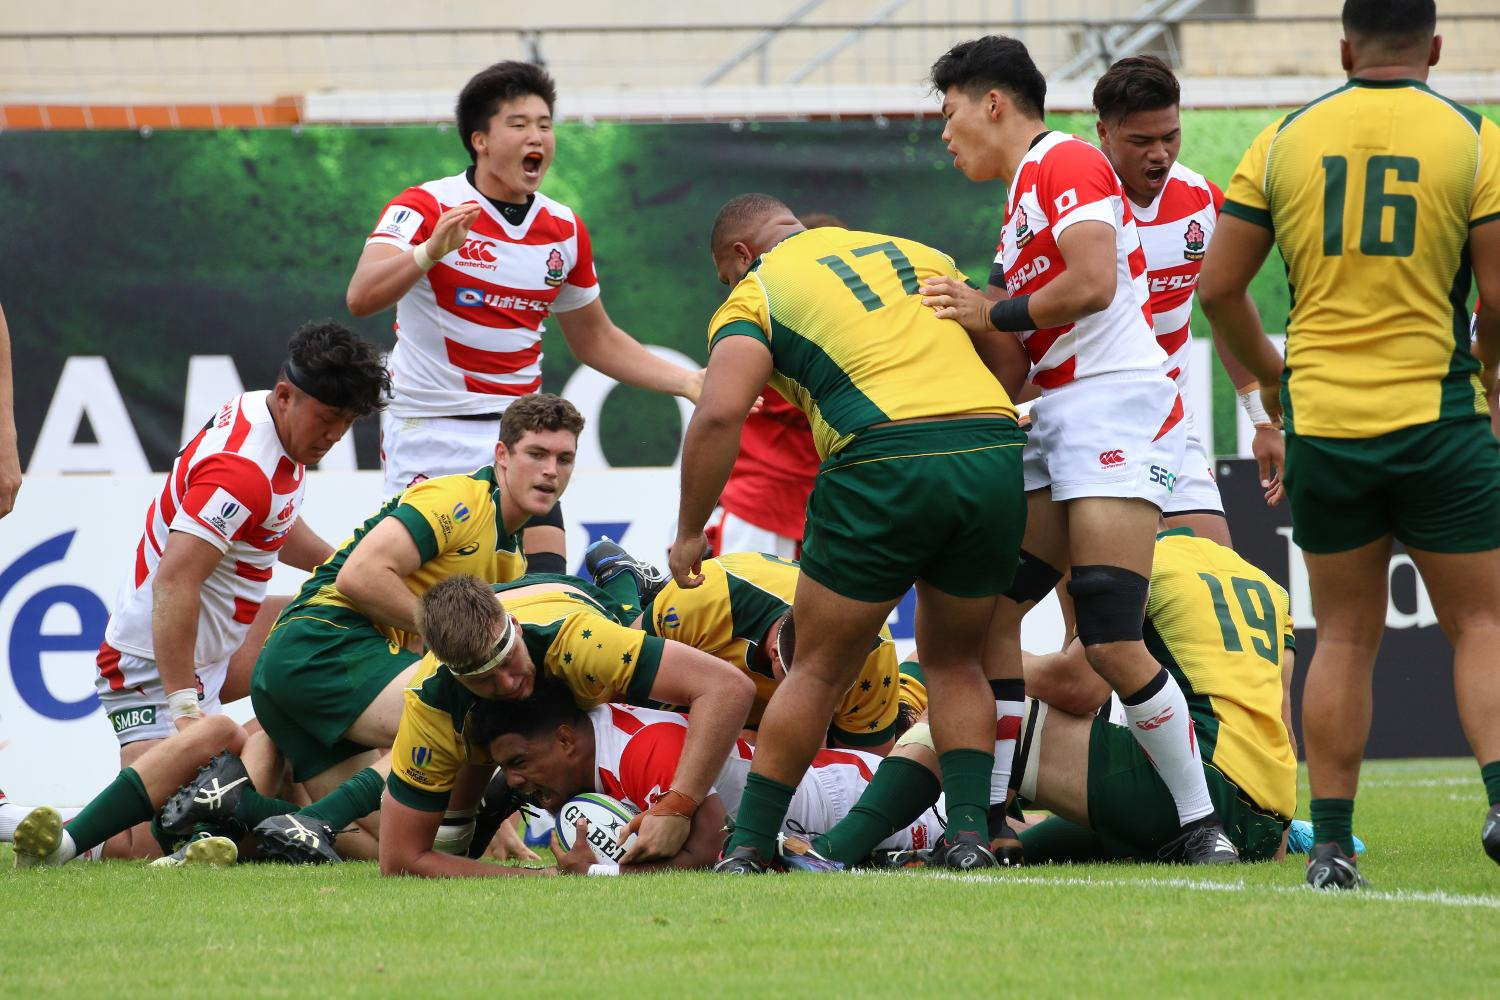 World Rugby U20 Championship 2018: Australia v Japan